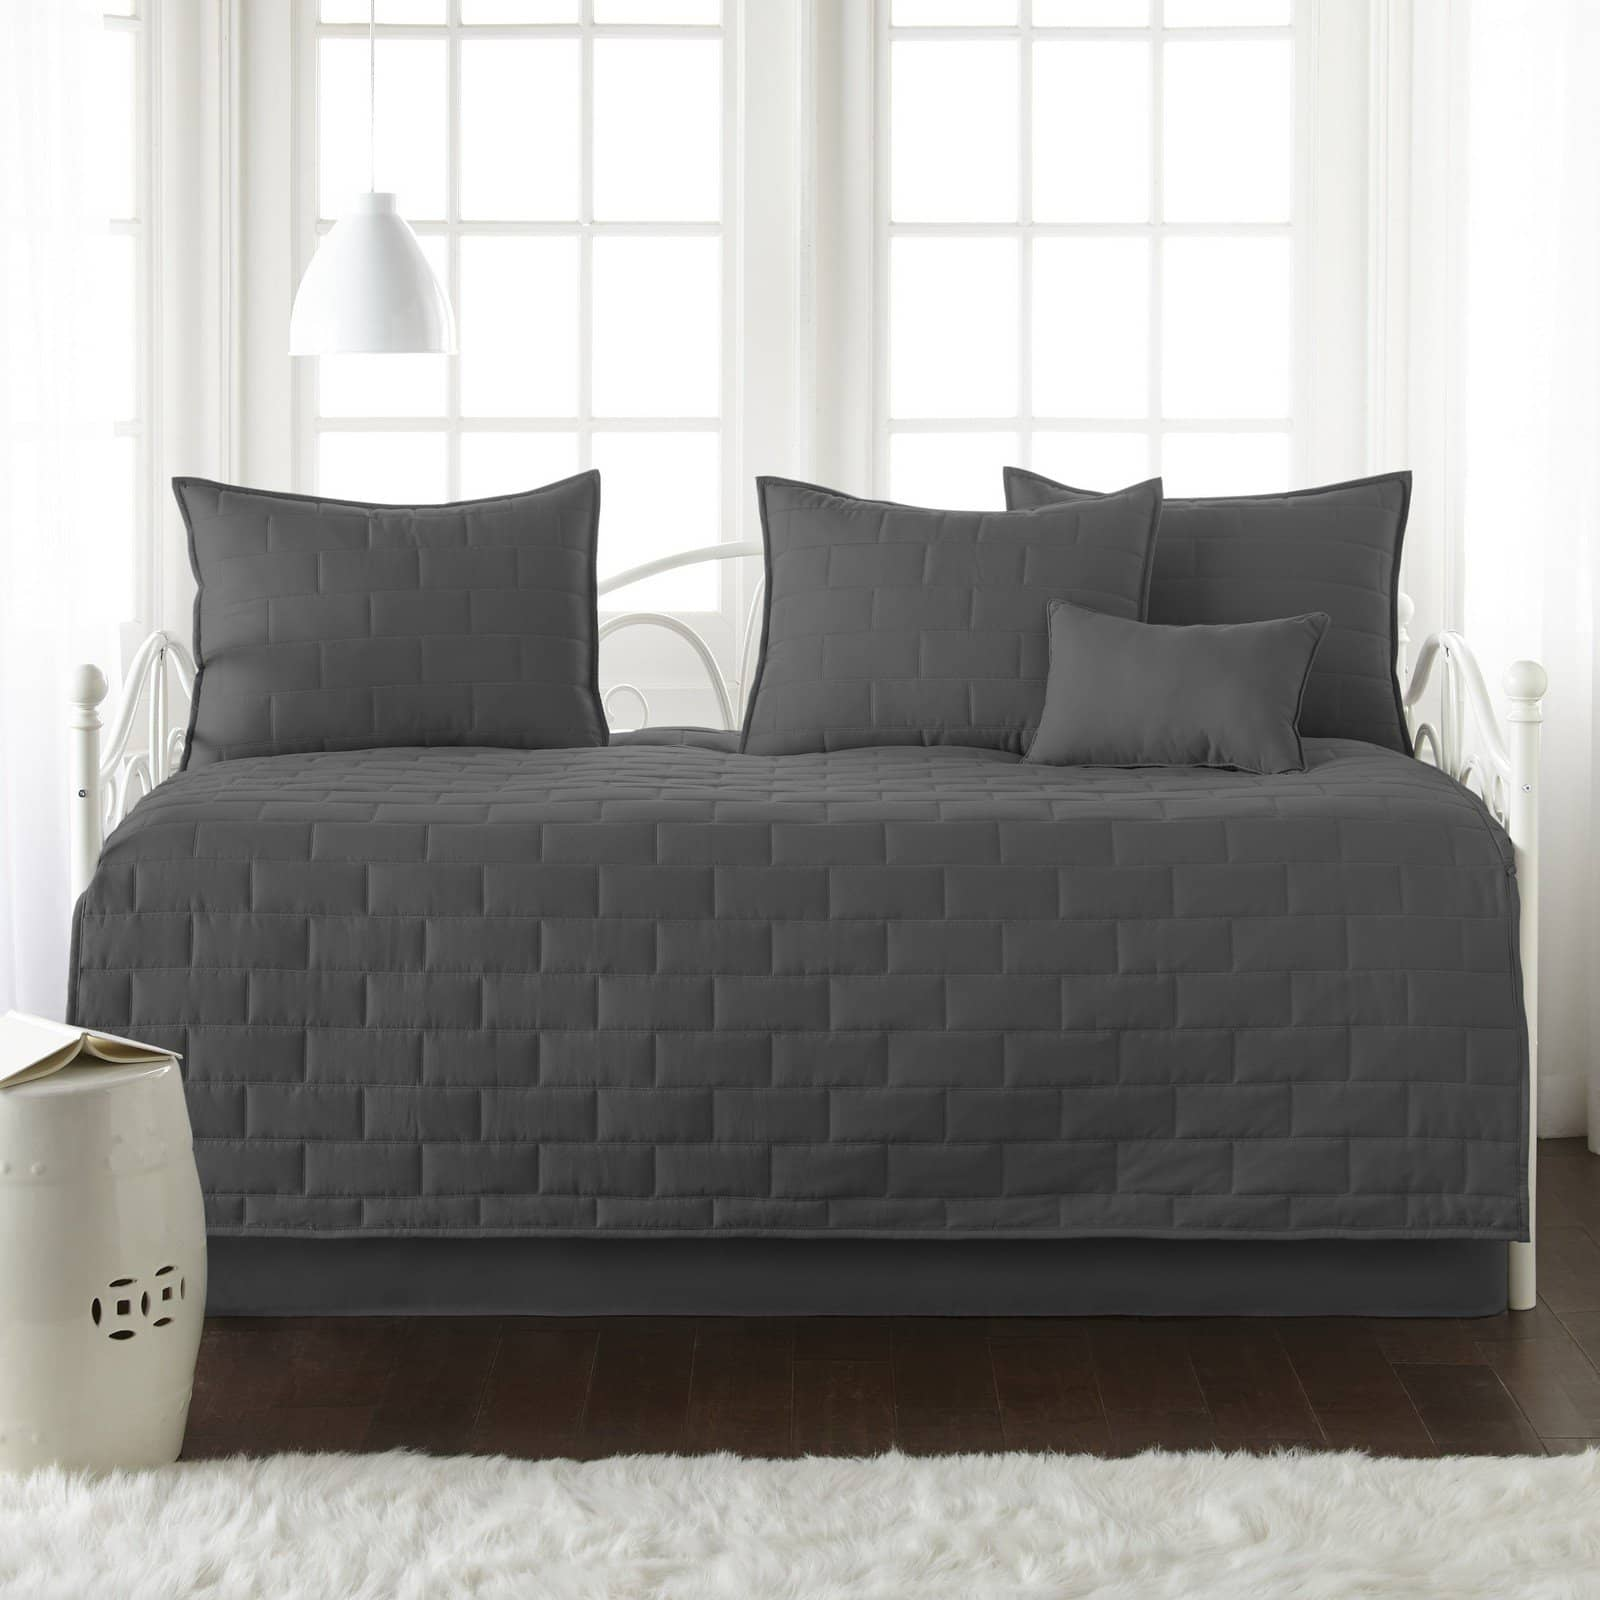 - Brickyard Collection Daybed Bedding 6-Piece Set Southshore Fine